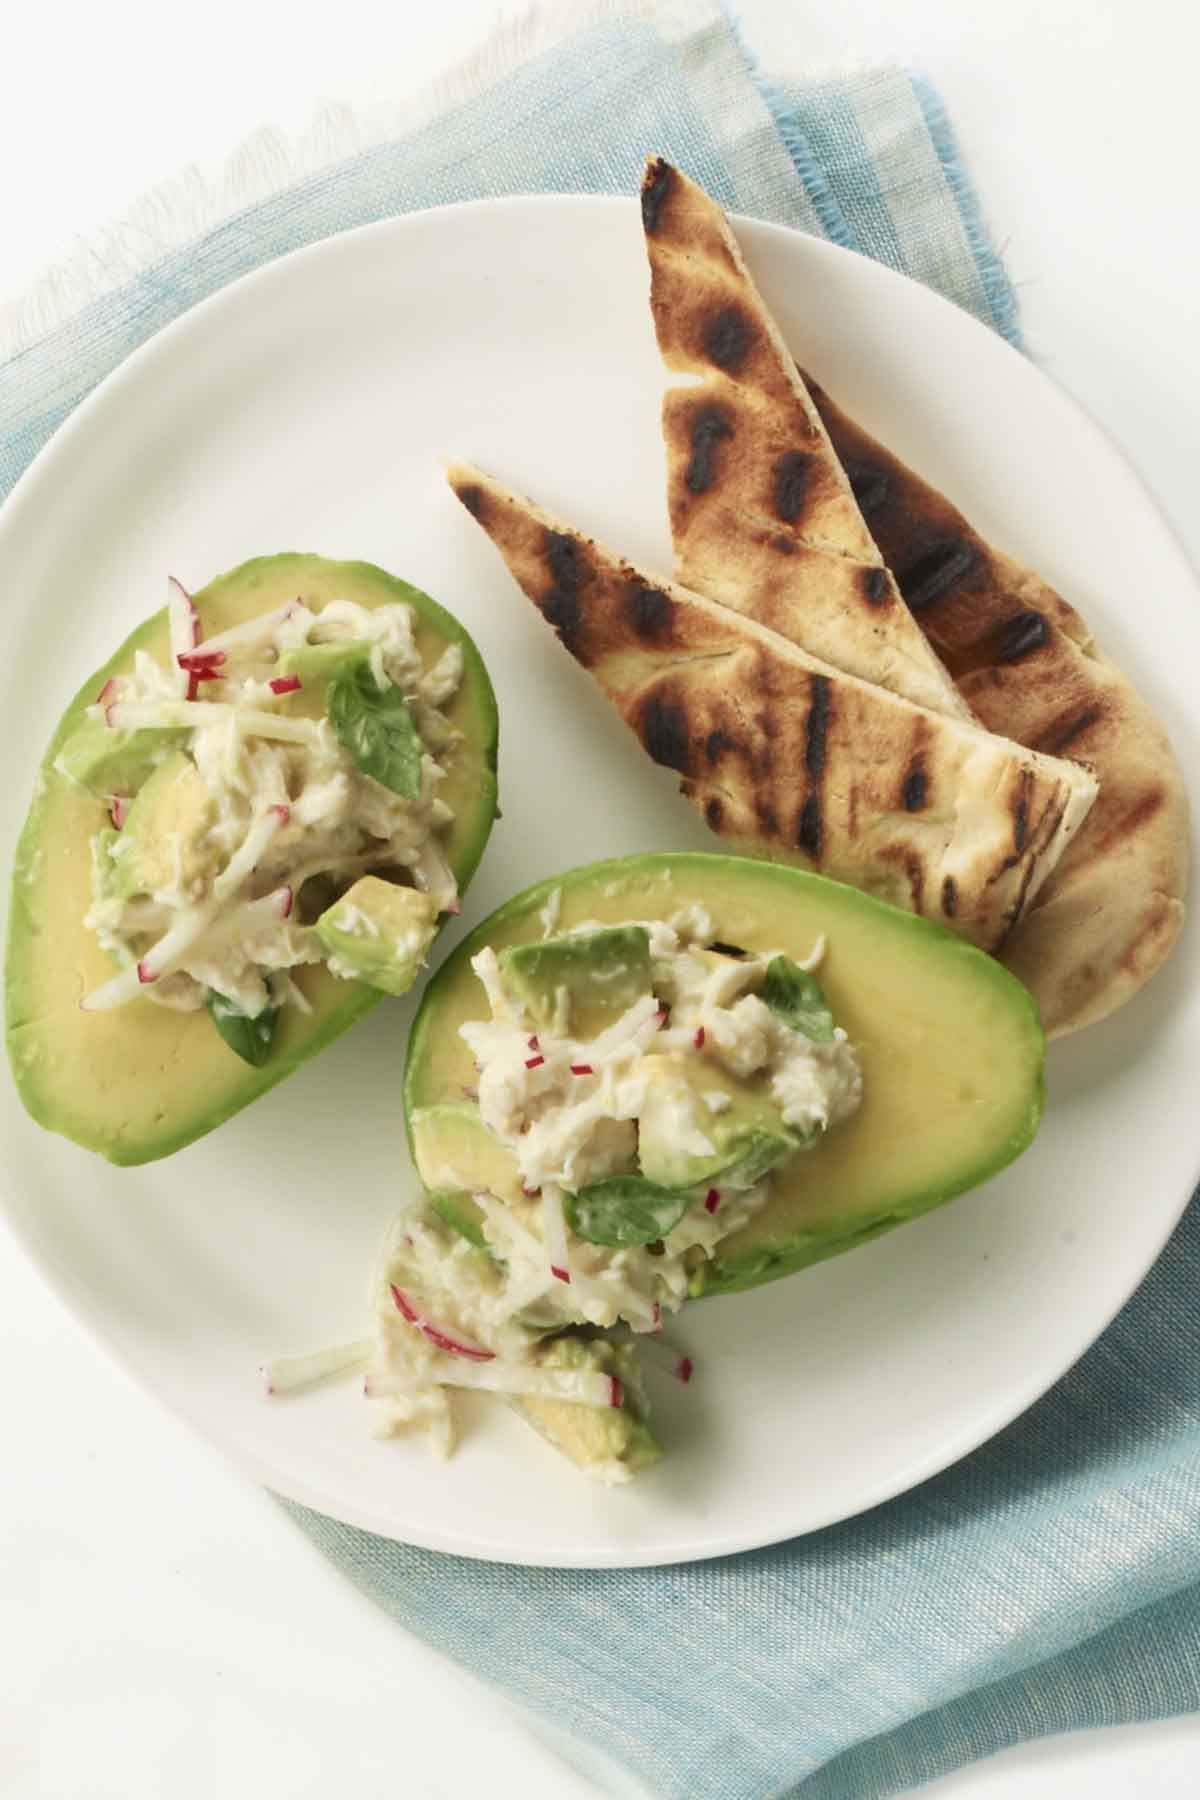 Avocado Recipes to Try if Youre Bored With Toast Avocado Recipes to Try if Youre Bored With Toast new photo